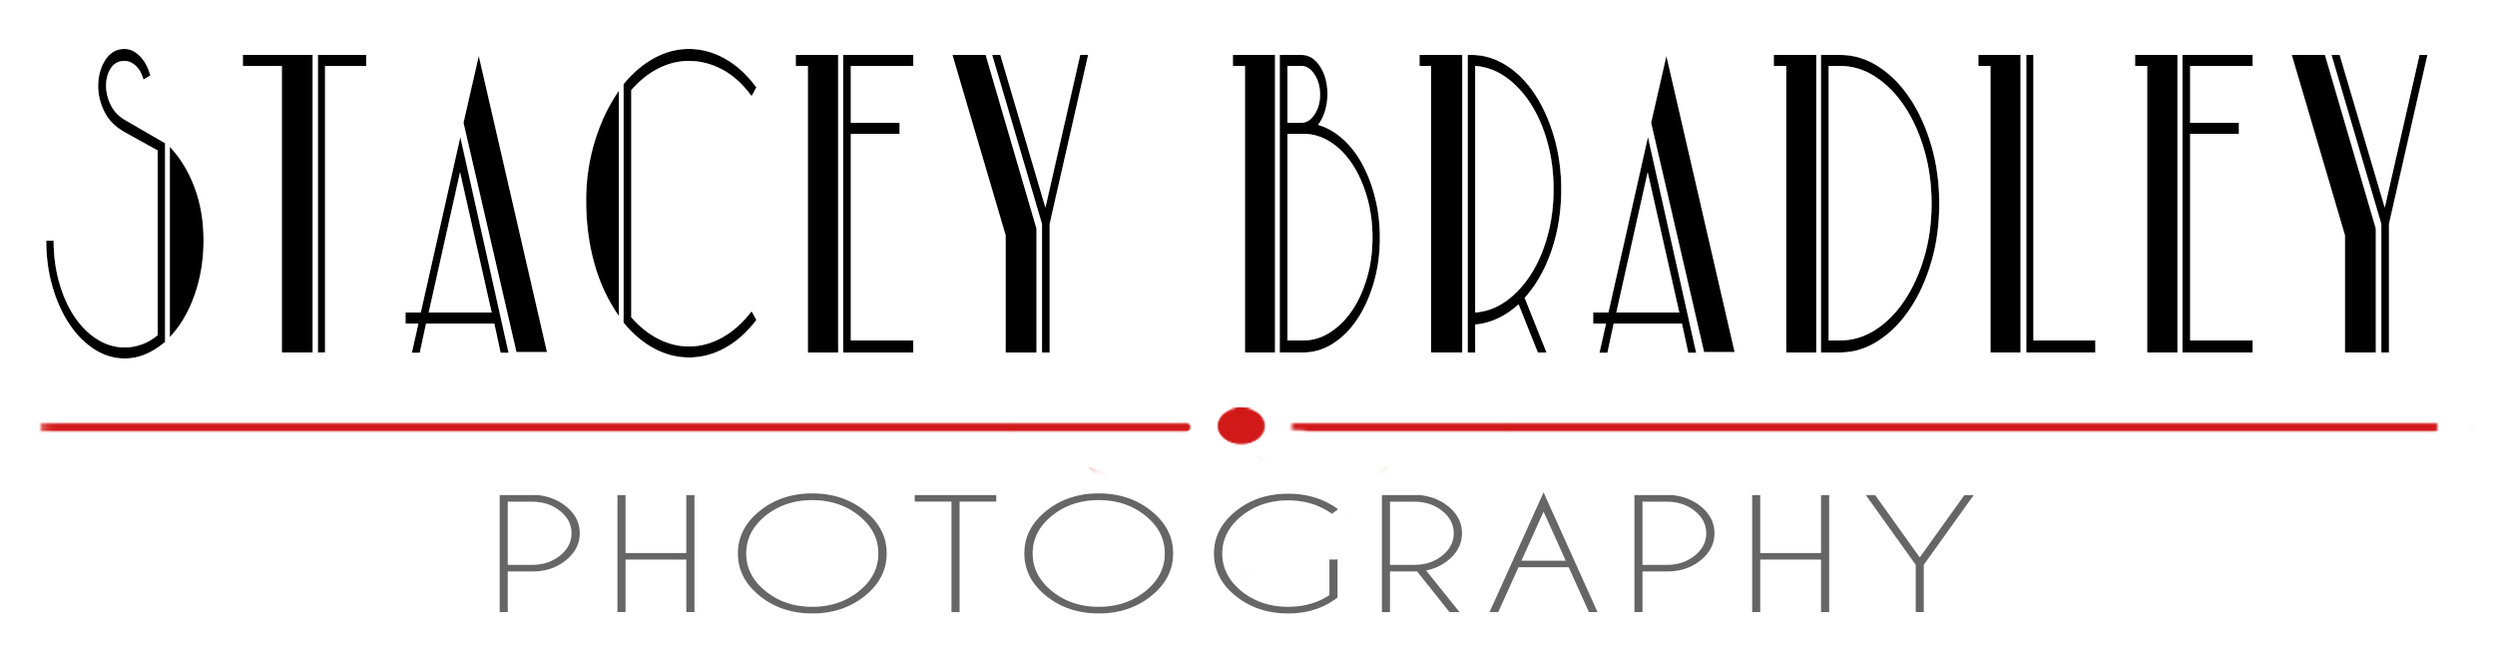 Stacey Bradley Photography